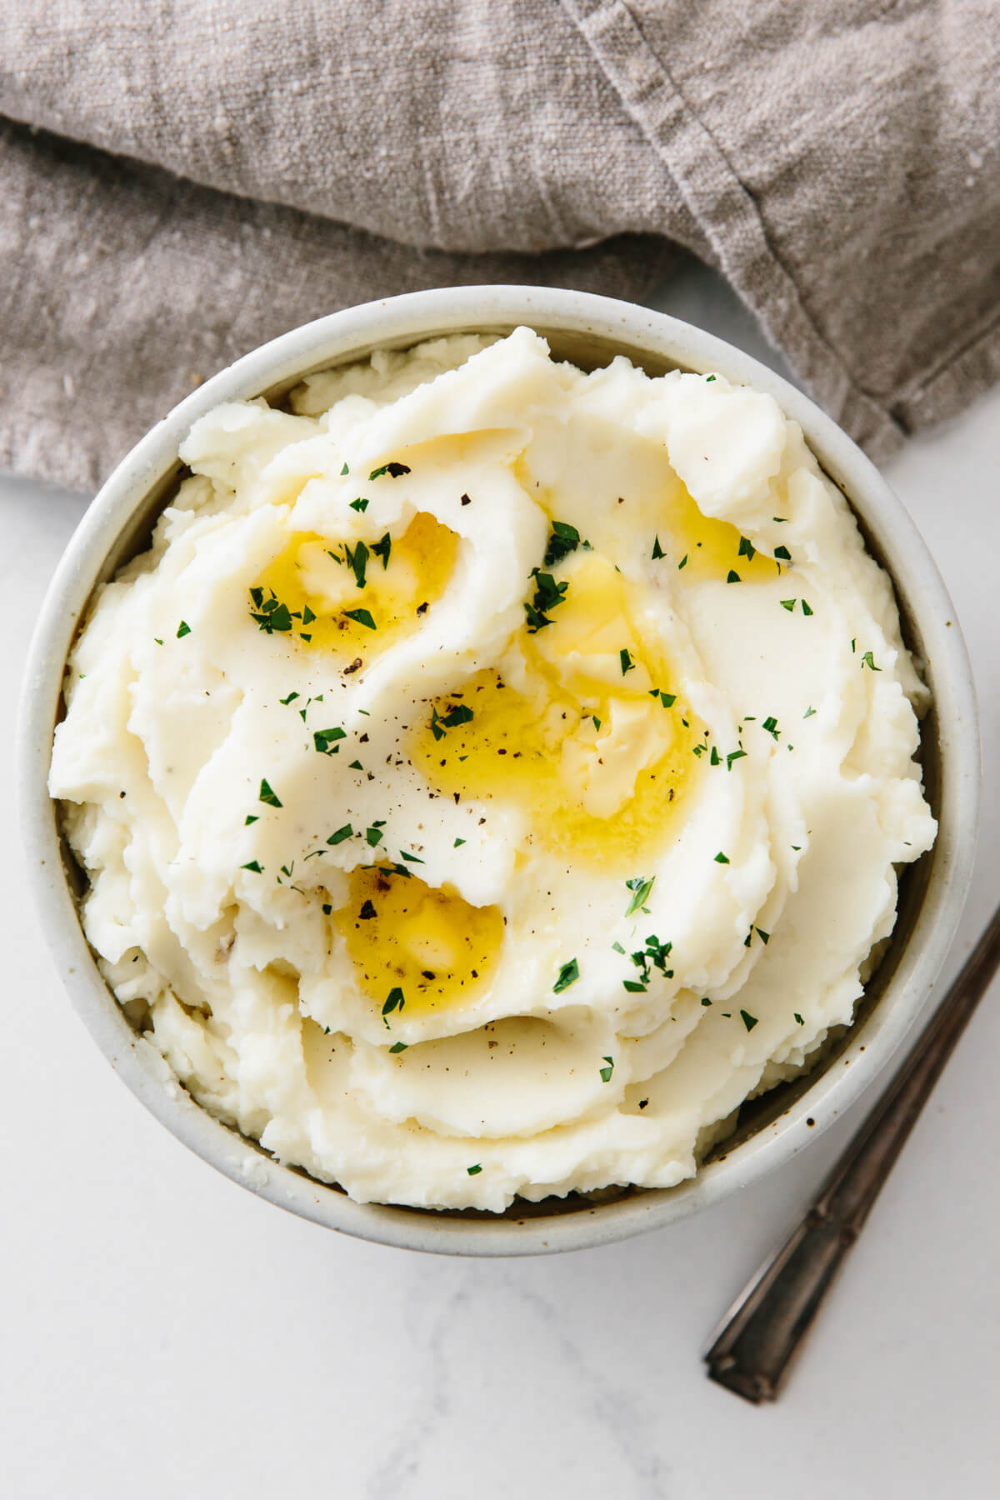 This Is The Best Mashed Potato Recipe It S Ultra Creamy Smooth Buttery And P Mashed Potatoes Recipe Easy Easy Potato Recipes Classic Mashed Potatoes Recipe